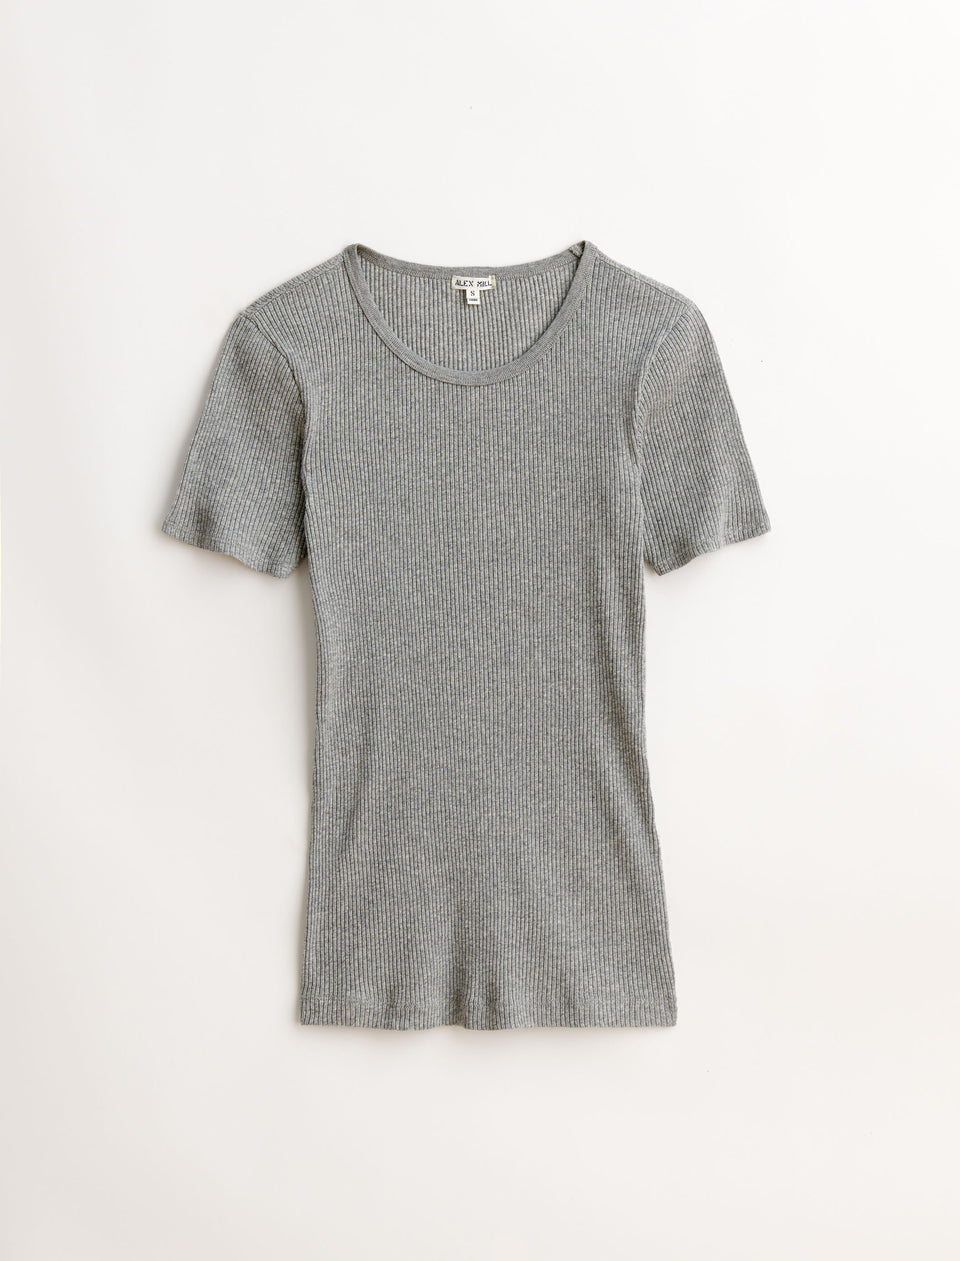 Shrunken Heather Rib Tee